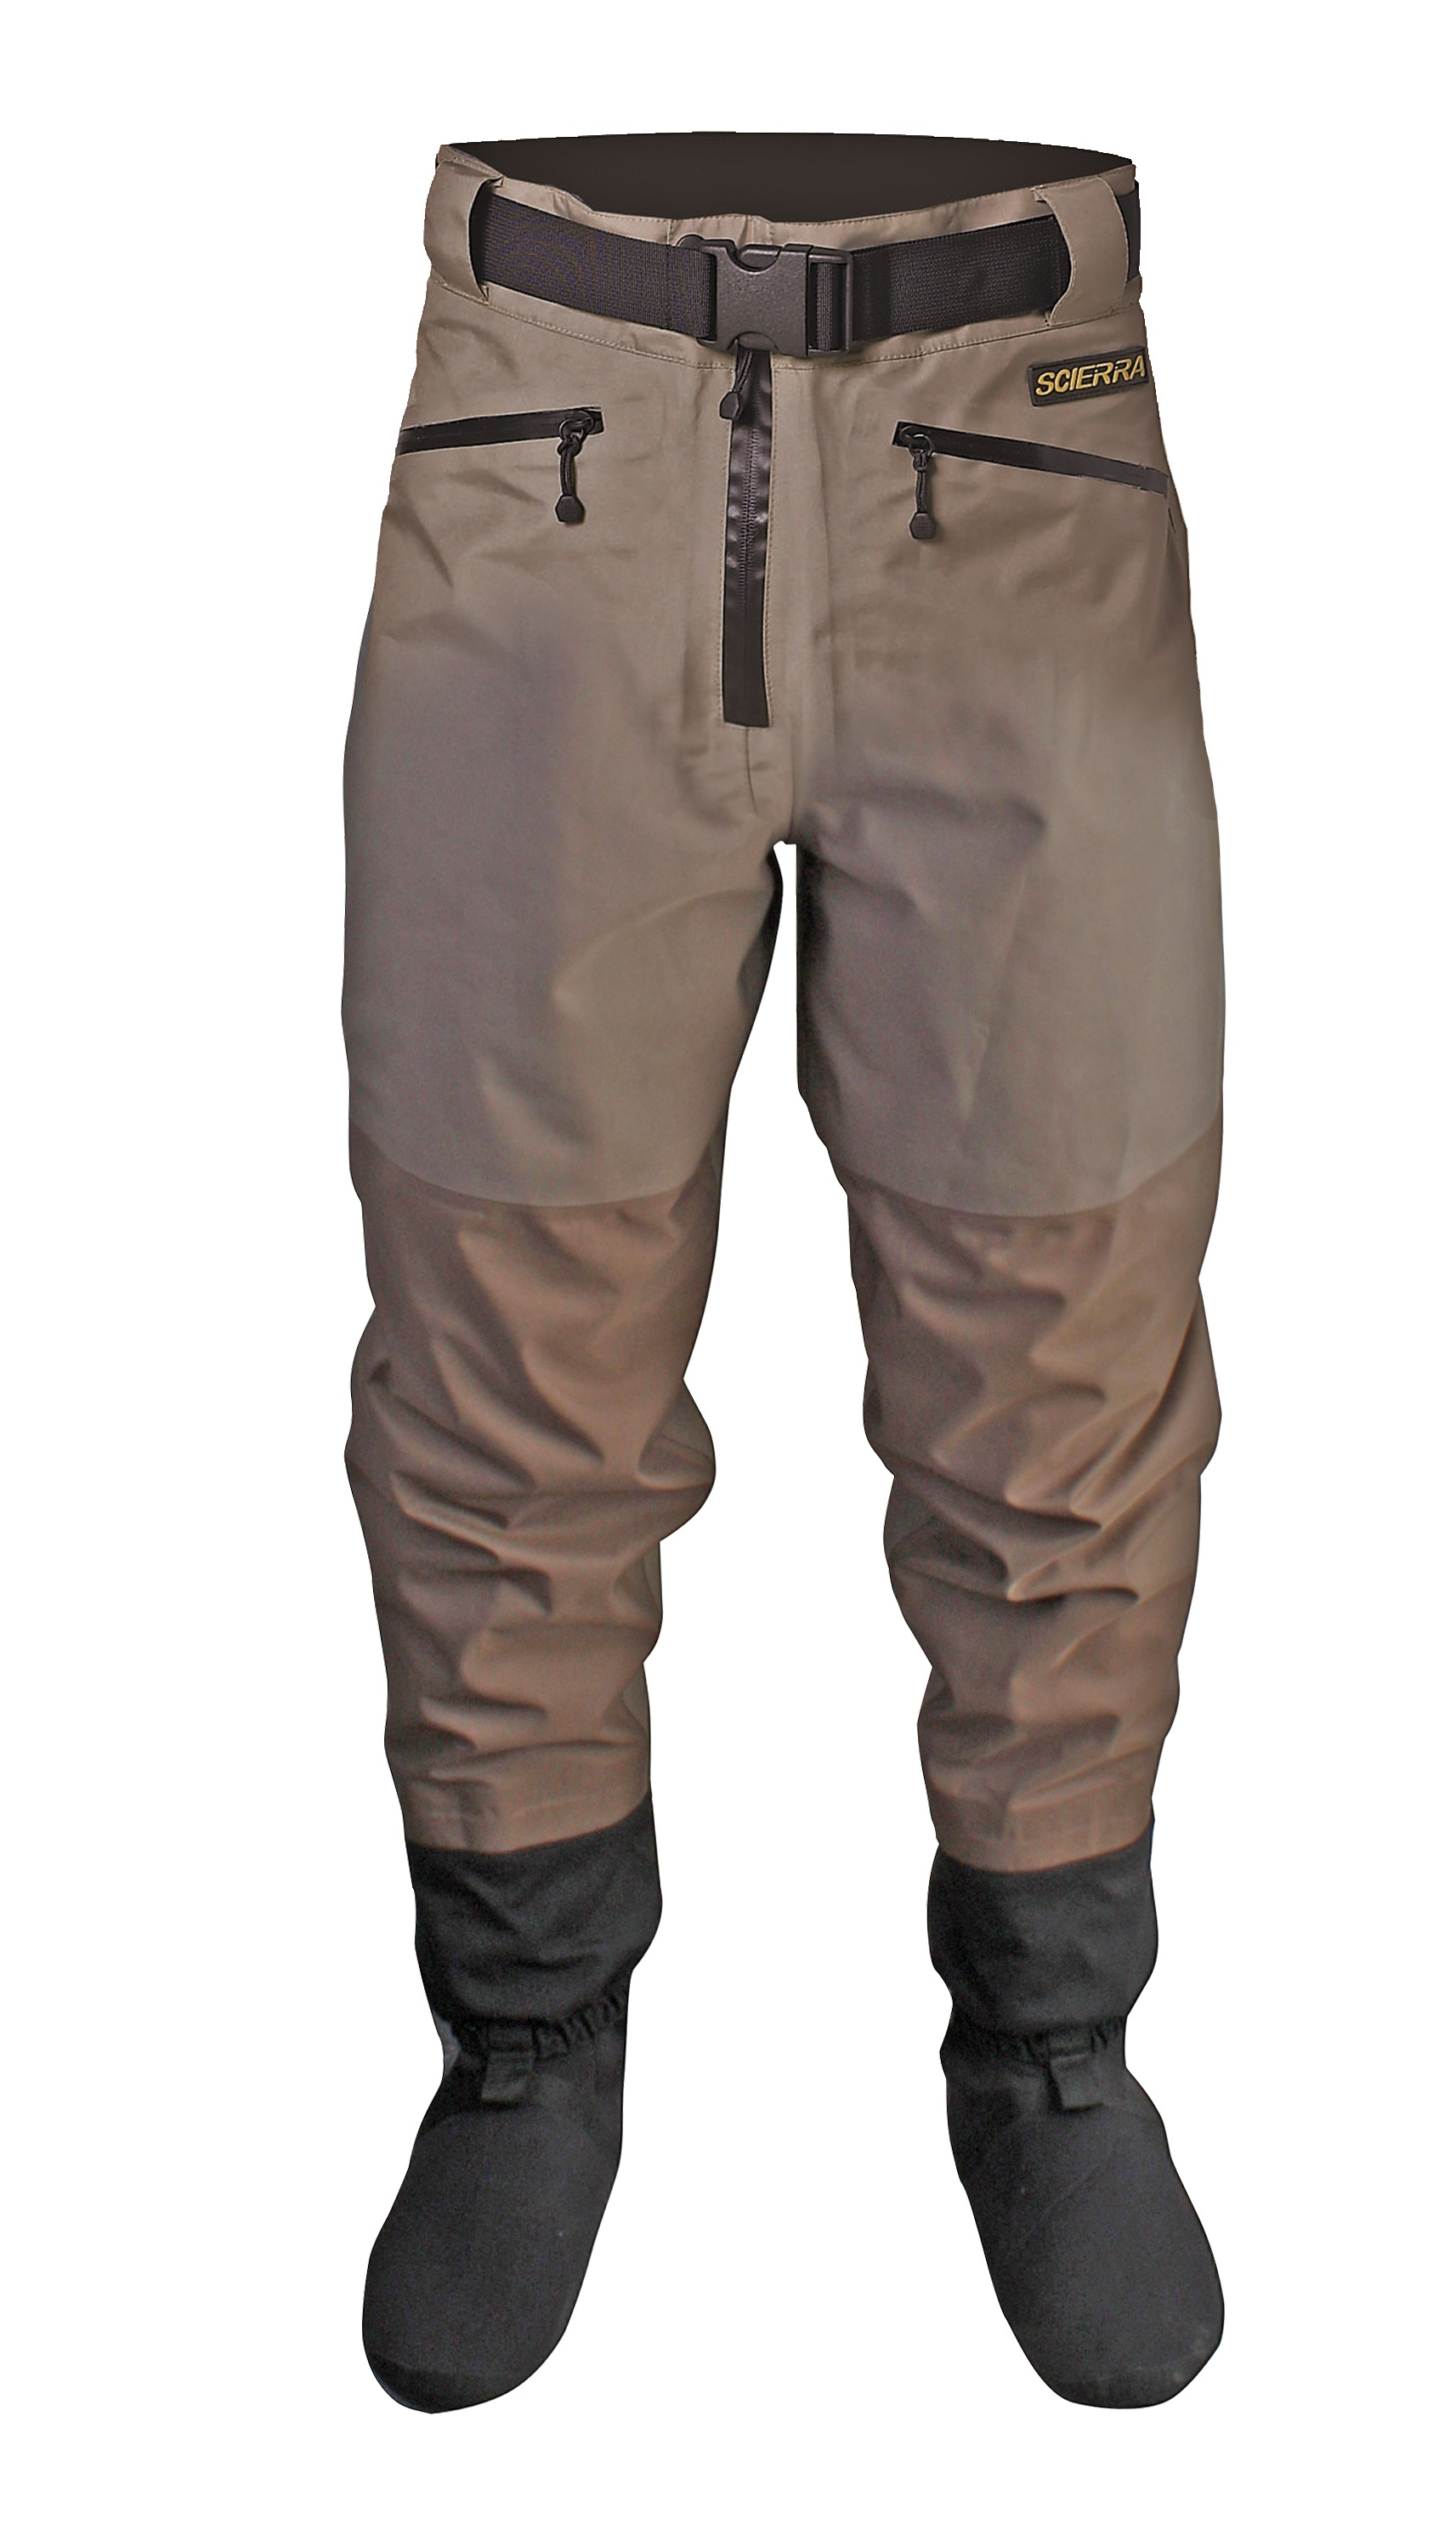 for Fishing waders on sale